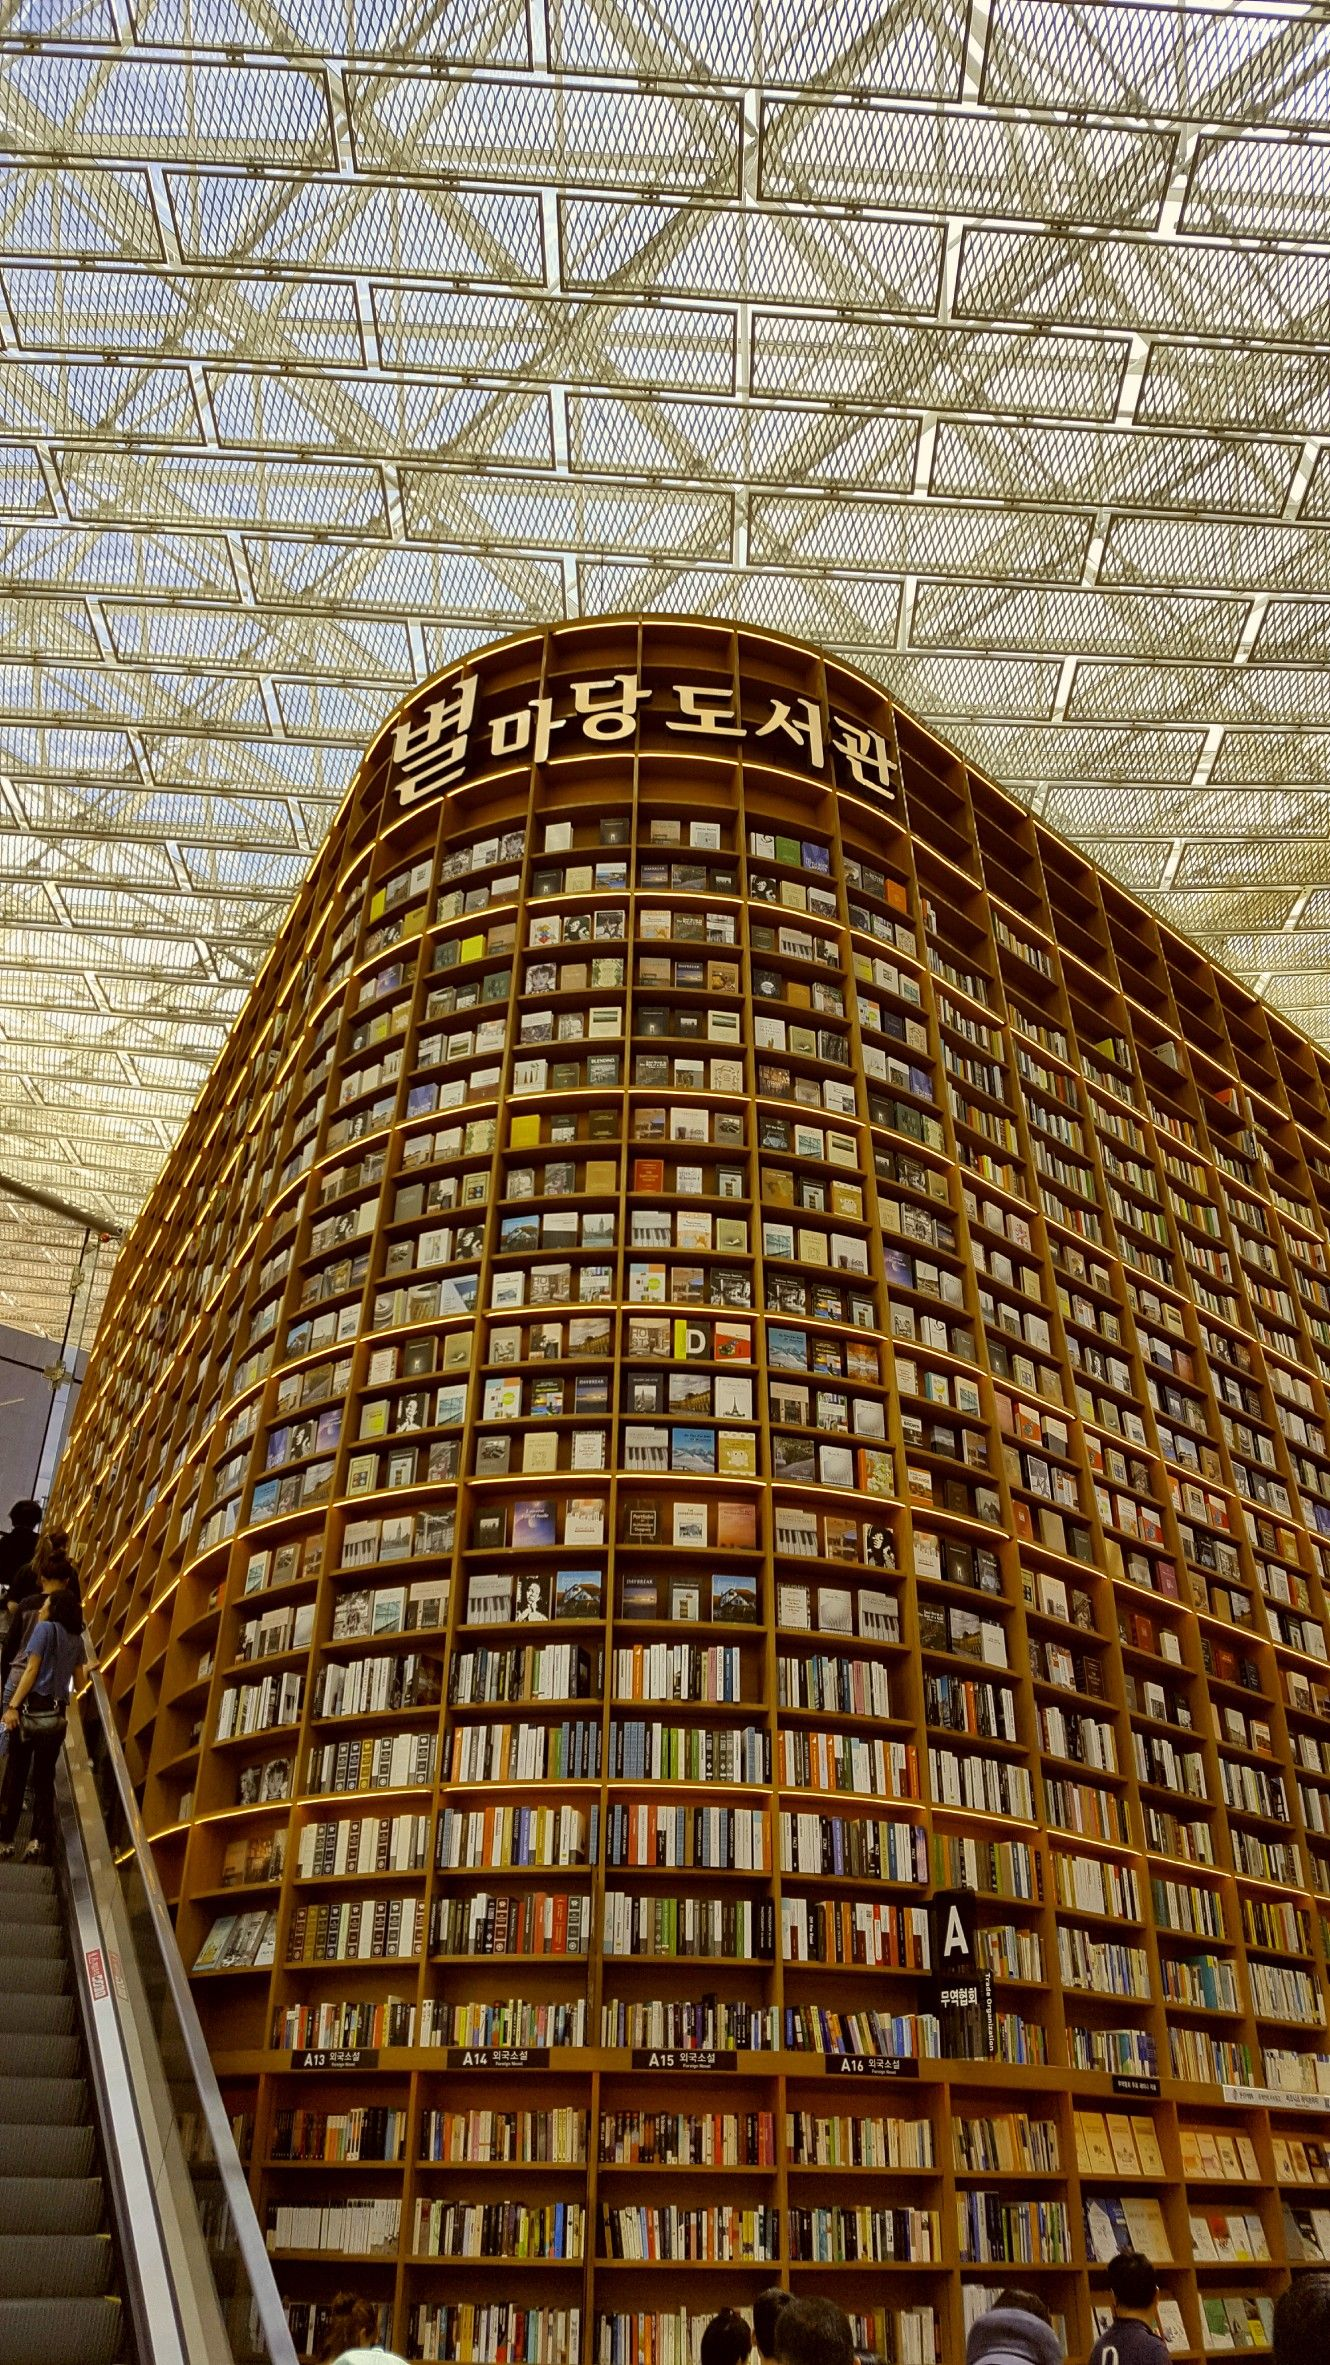 The New Star Field Library At Coex Mall Seoul Korea South Korea Seoul Seoul Korea Travel South Korea Travel